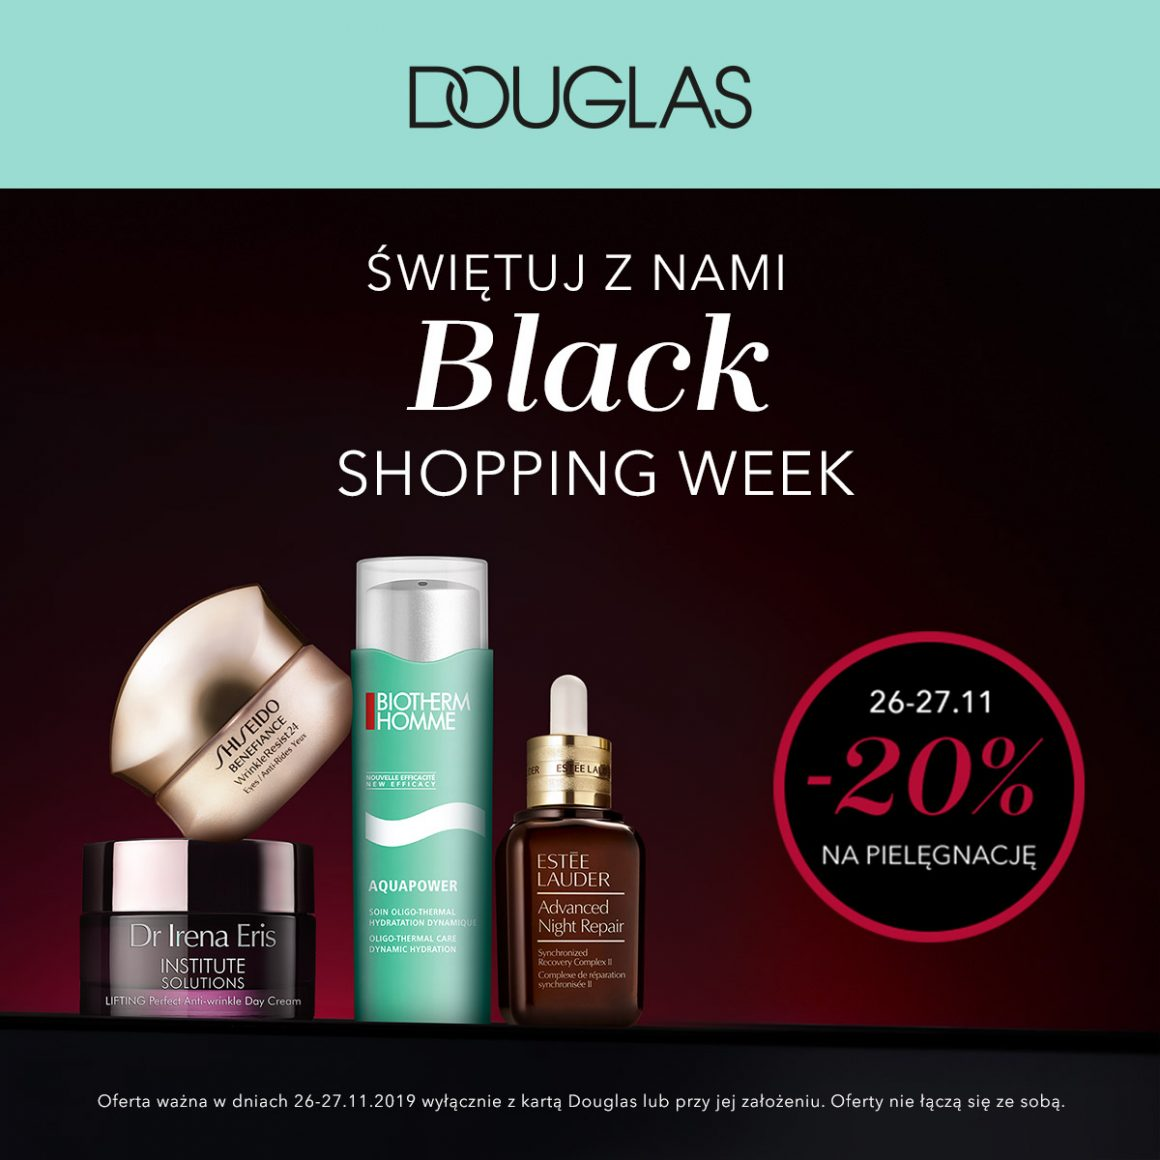 BLACK SHOPPING WEEK W DOUGLAS!